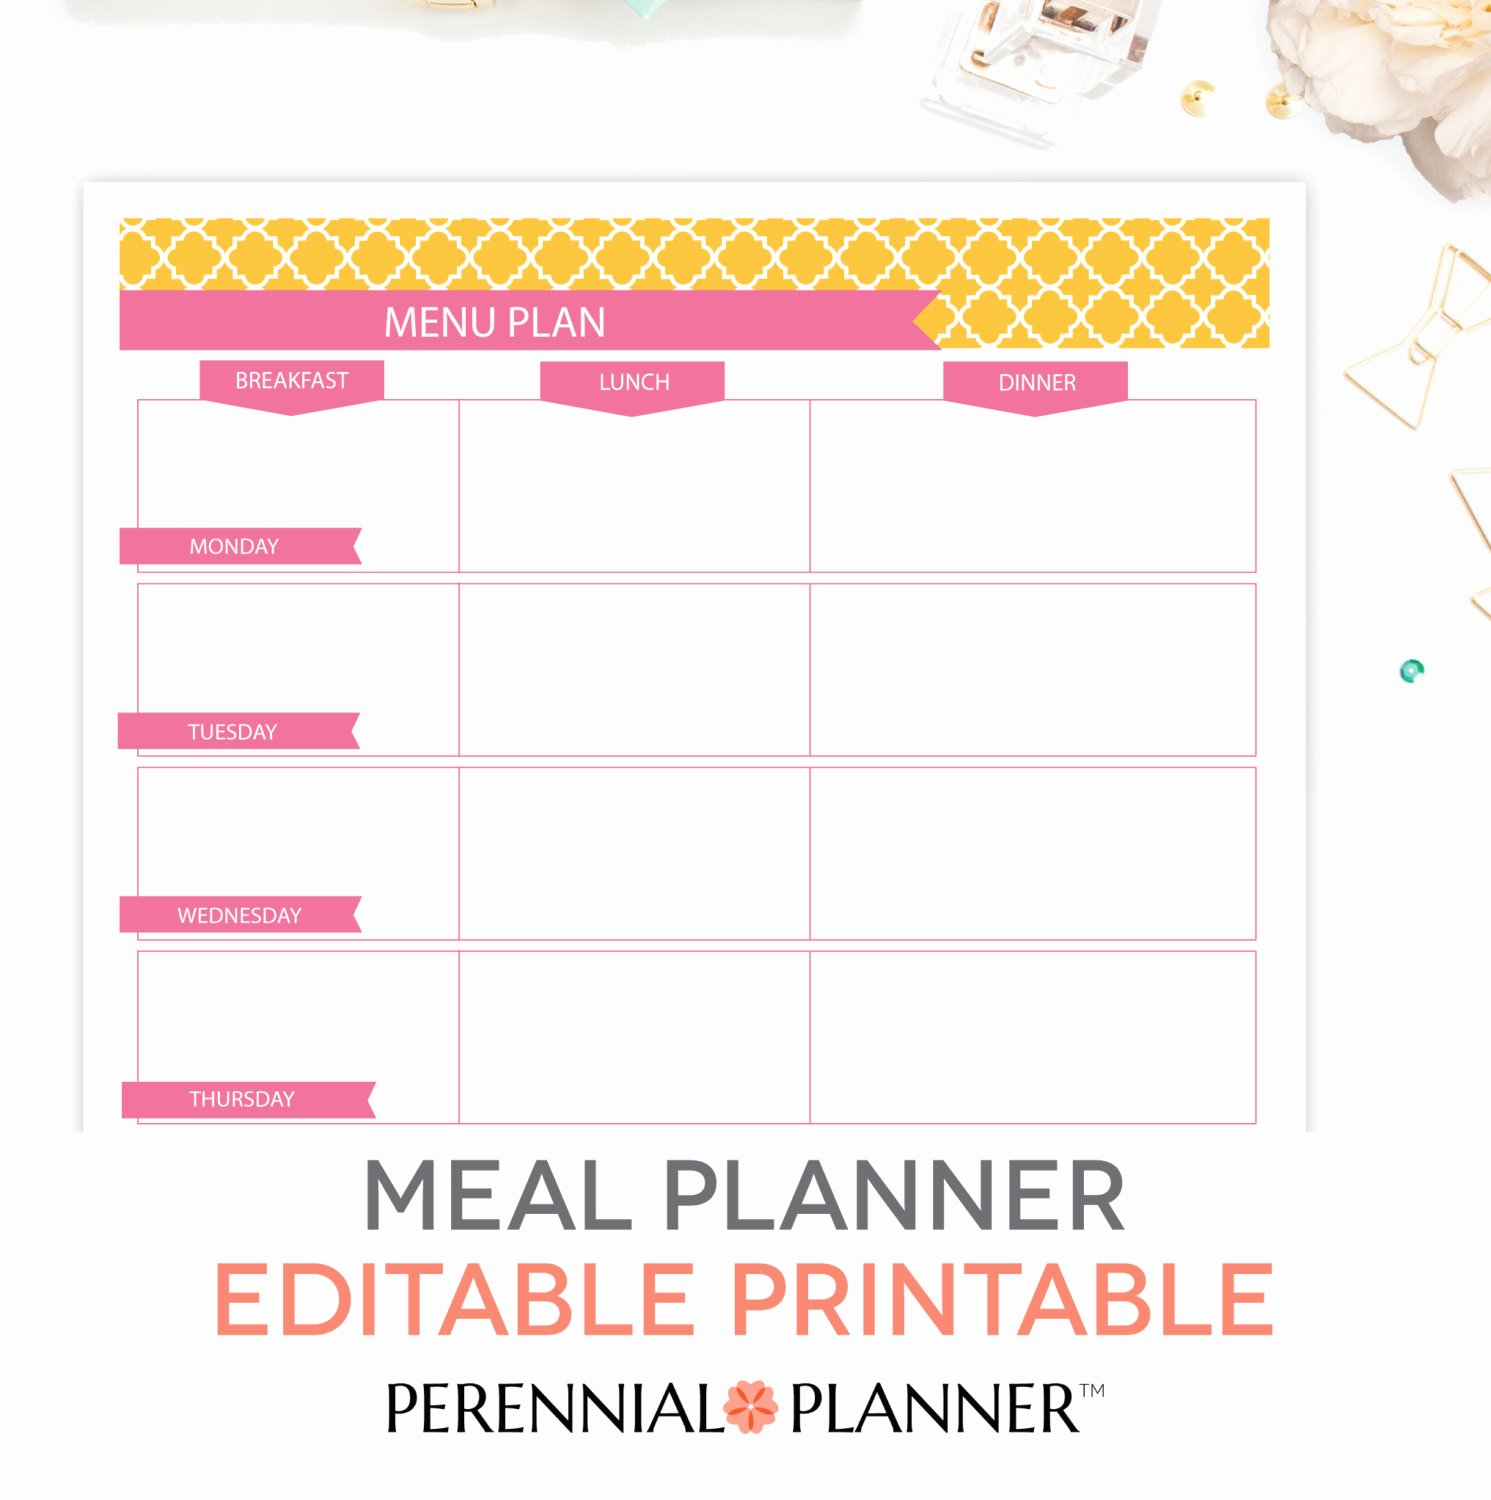 Monthly Meal Planner Template New Menu Plan Weekly Meal Planning Template Printable Editable